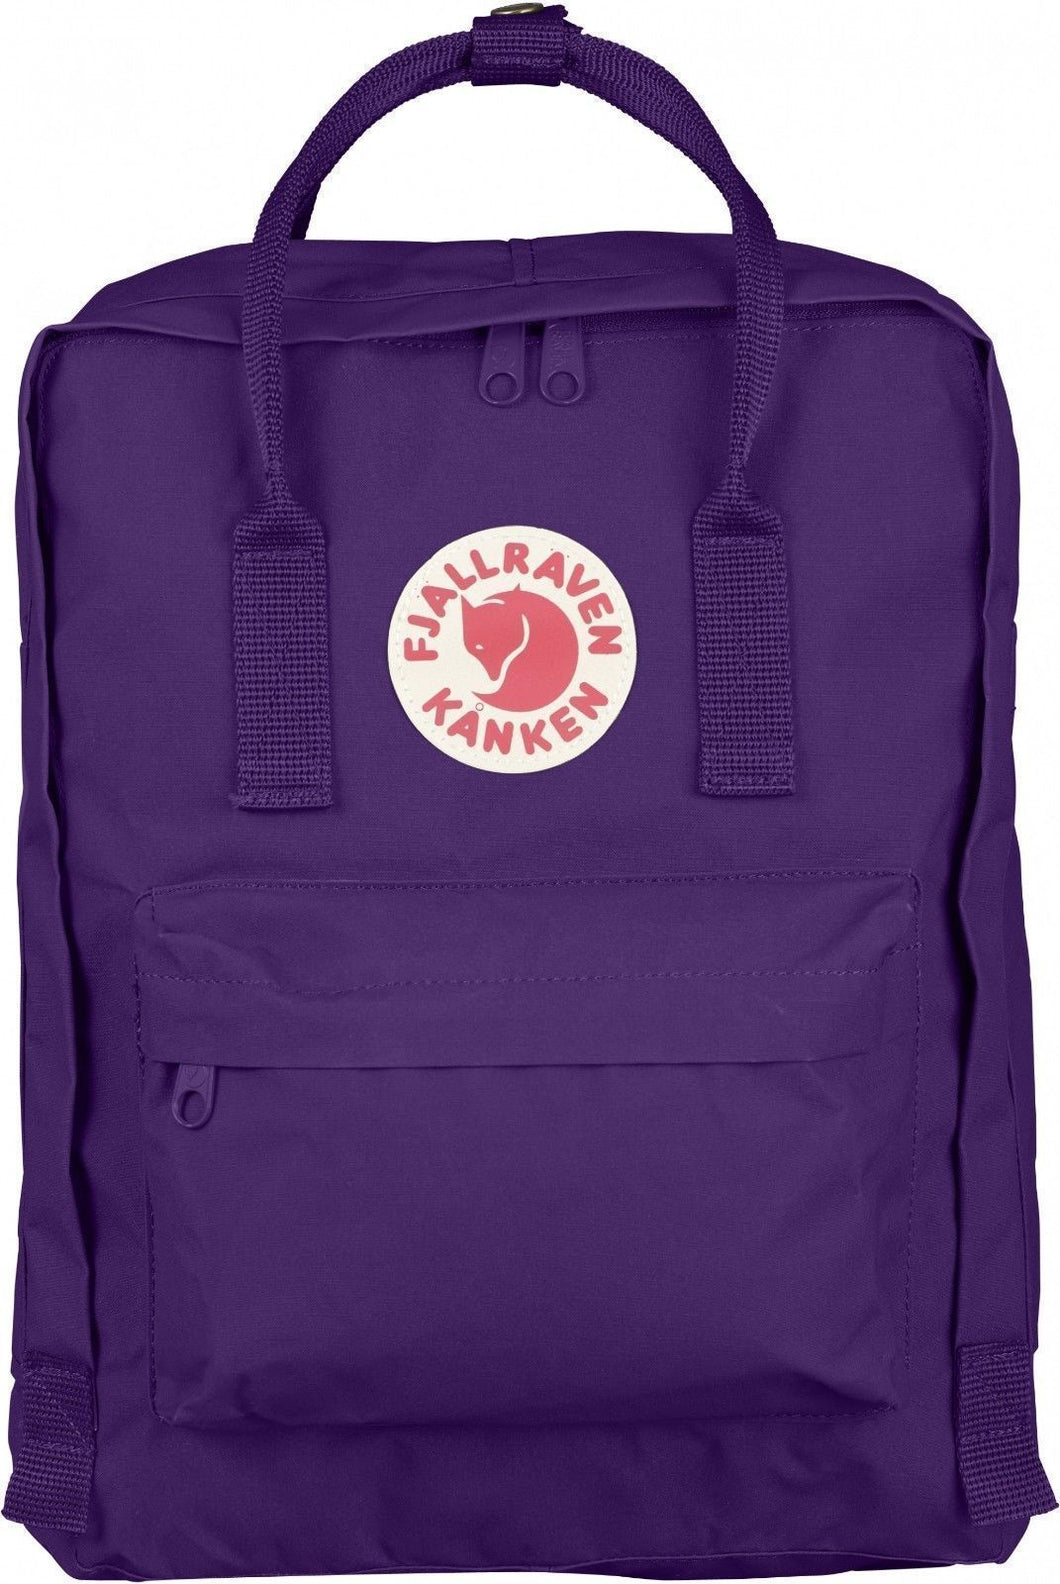 7/16/20L BackPack Bag Travel Purple